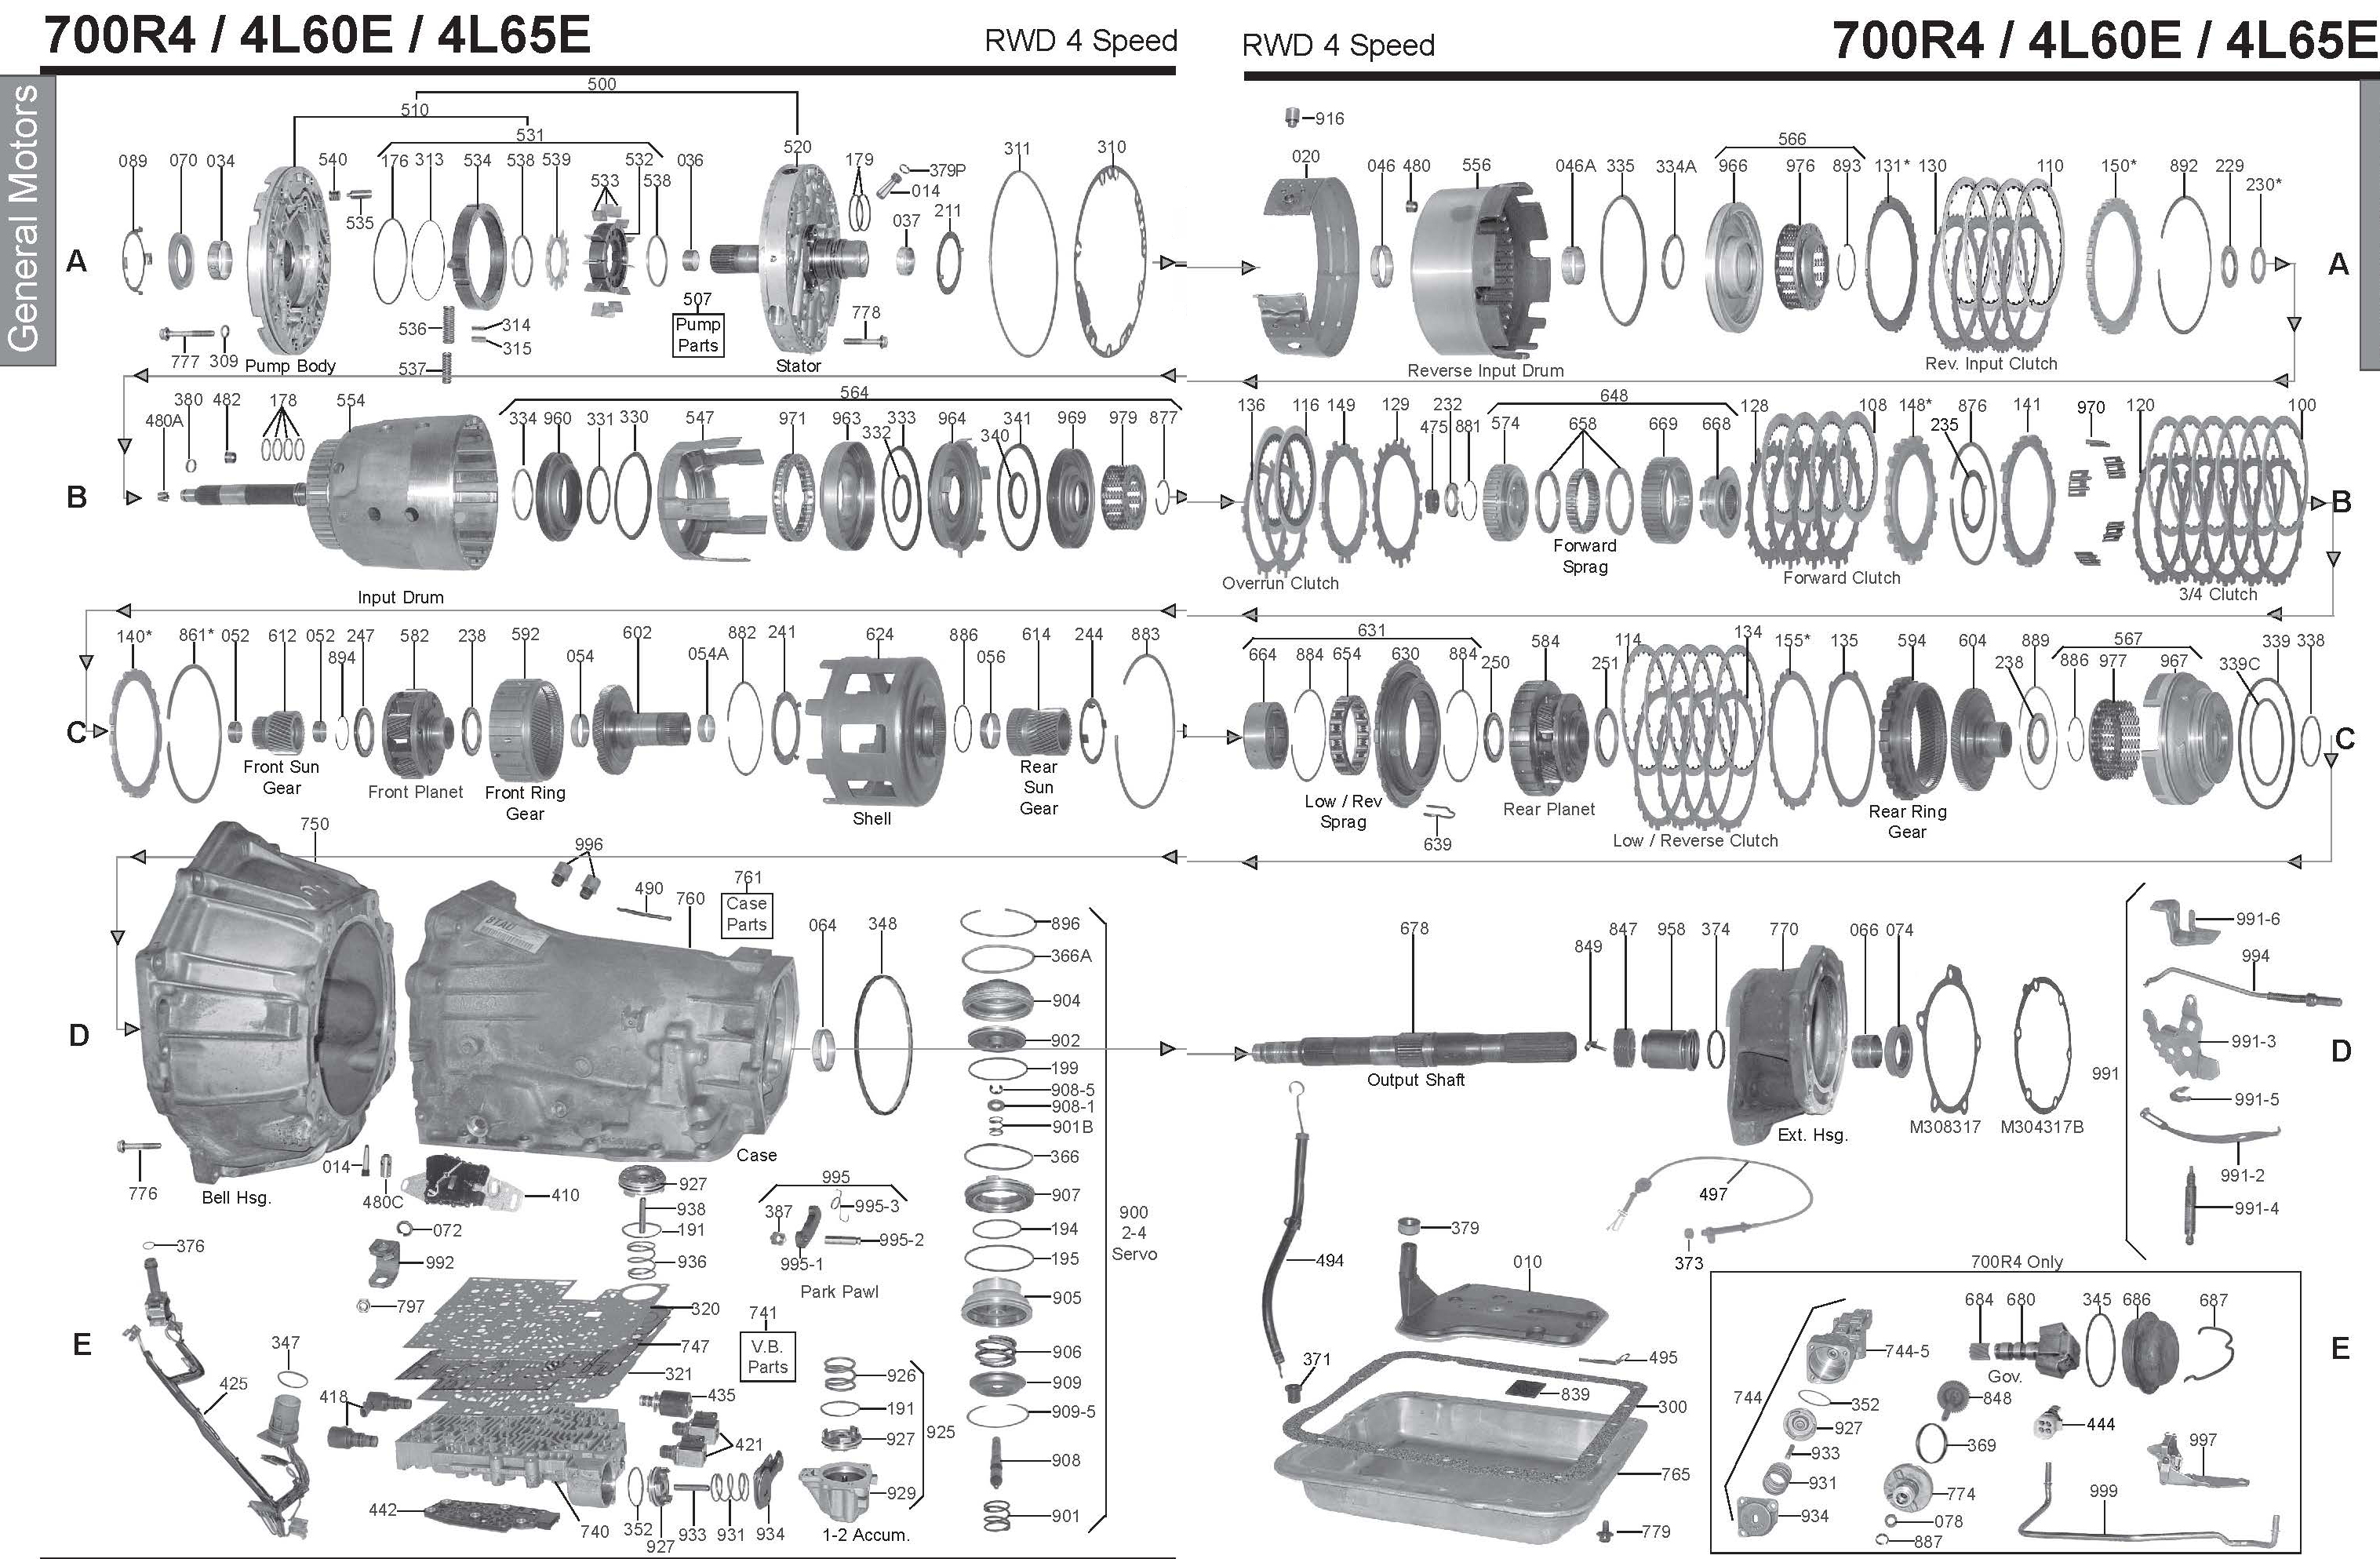 2010 jeep fog light wiring on a with 1997 Dodge Ram Light Wiring Diagram on Wiring Diagram 2011 Jeep Grand Cherokee in addition 2007 Honda Element Radio Wiring Diagram furthermore ShowAssembly further Chevy Aftermarket Stereo Harness Diagram in addition 2014 F250 Powerstroke Fuse Diagram.